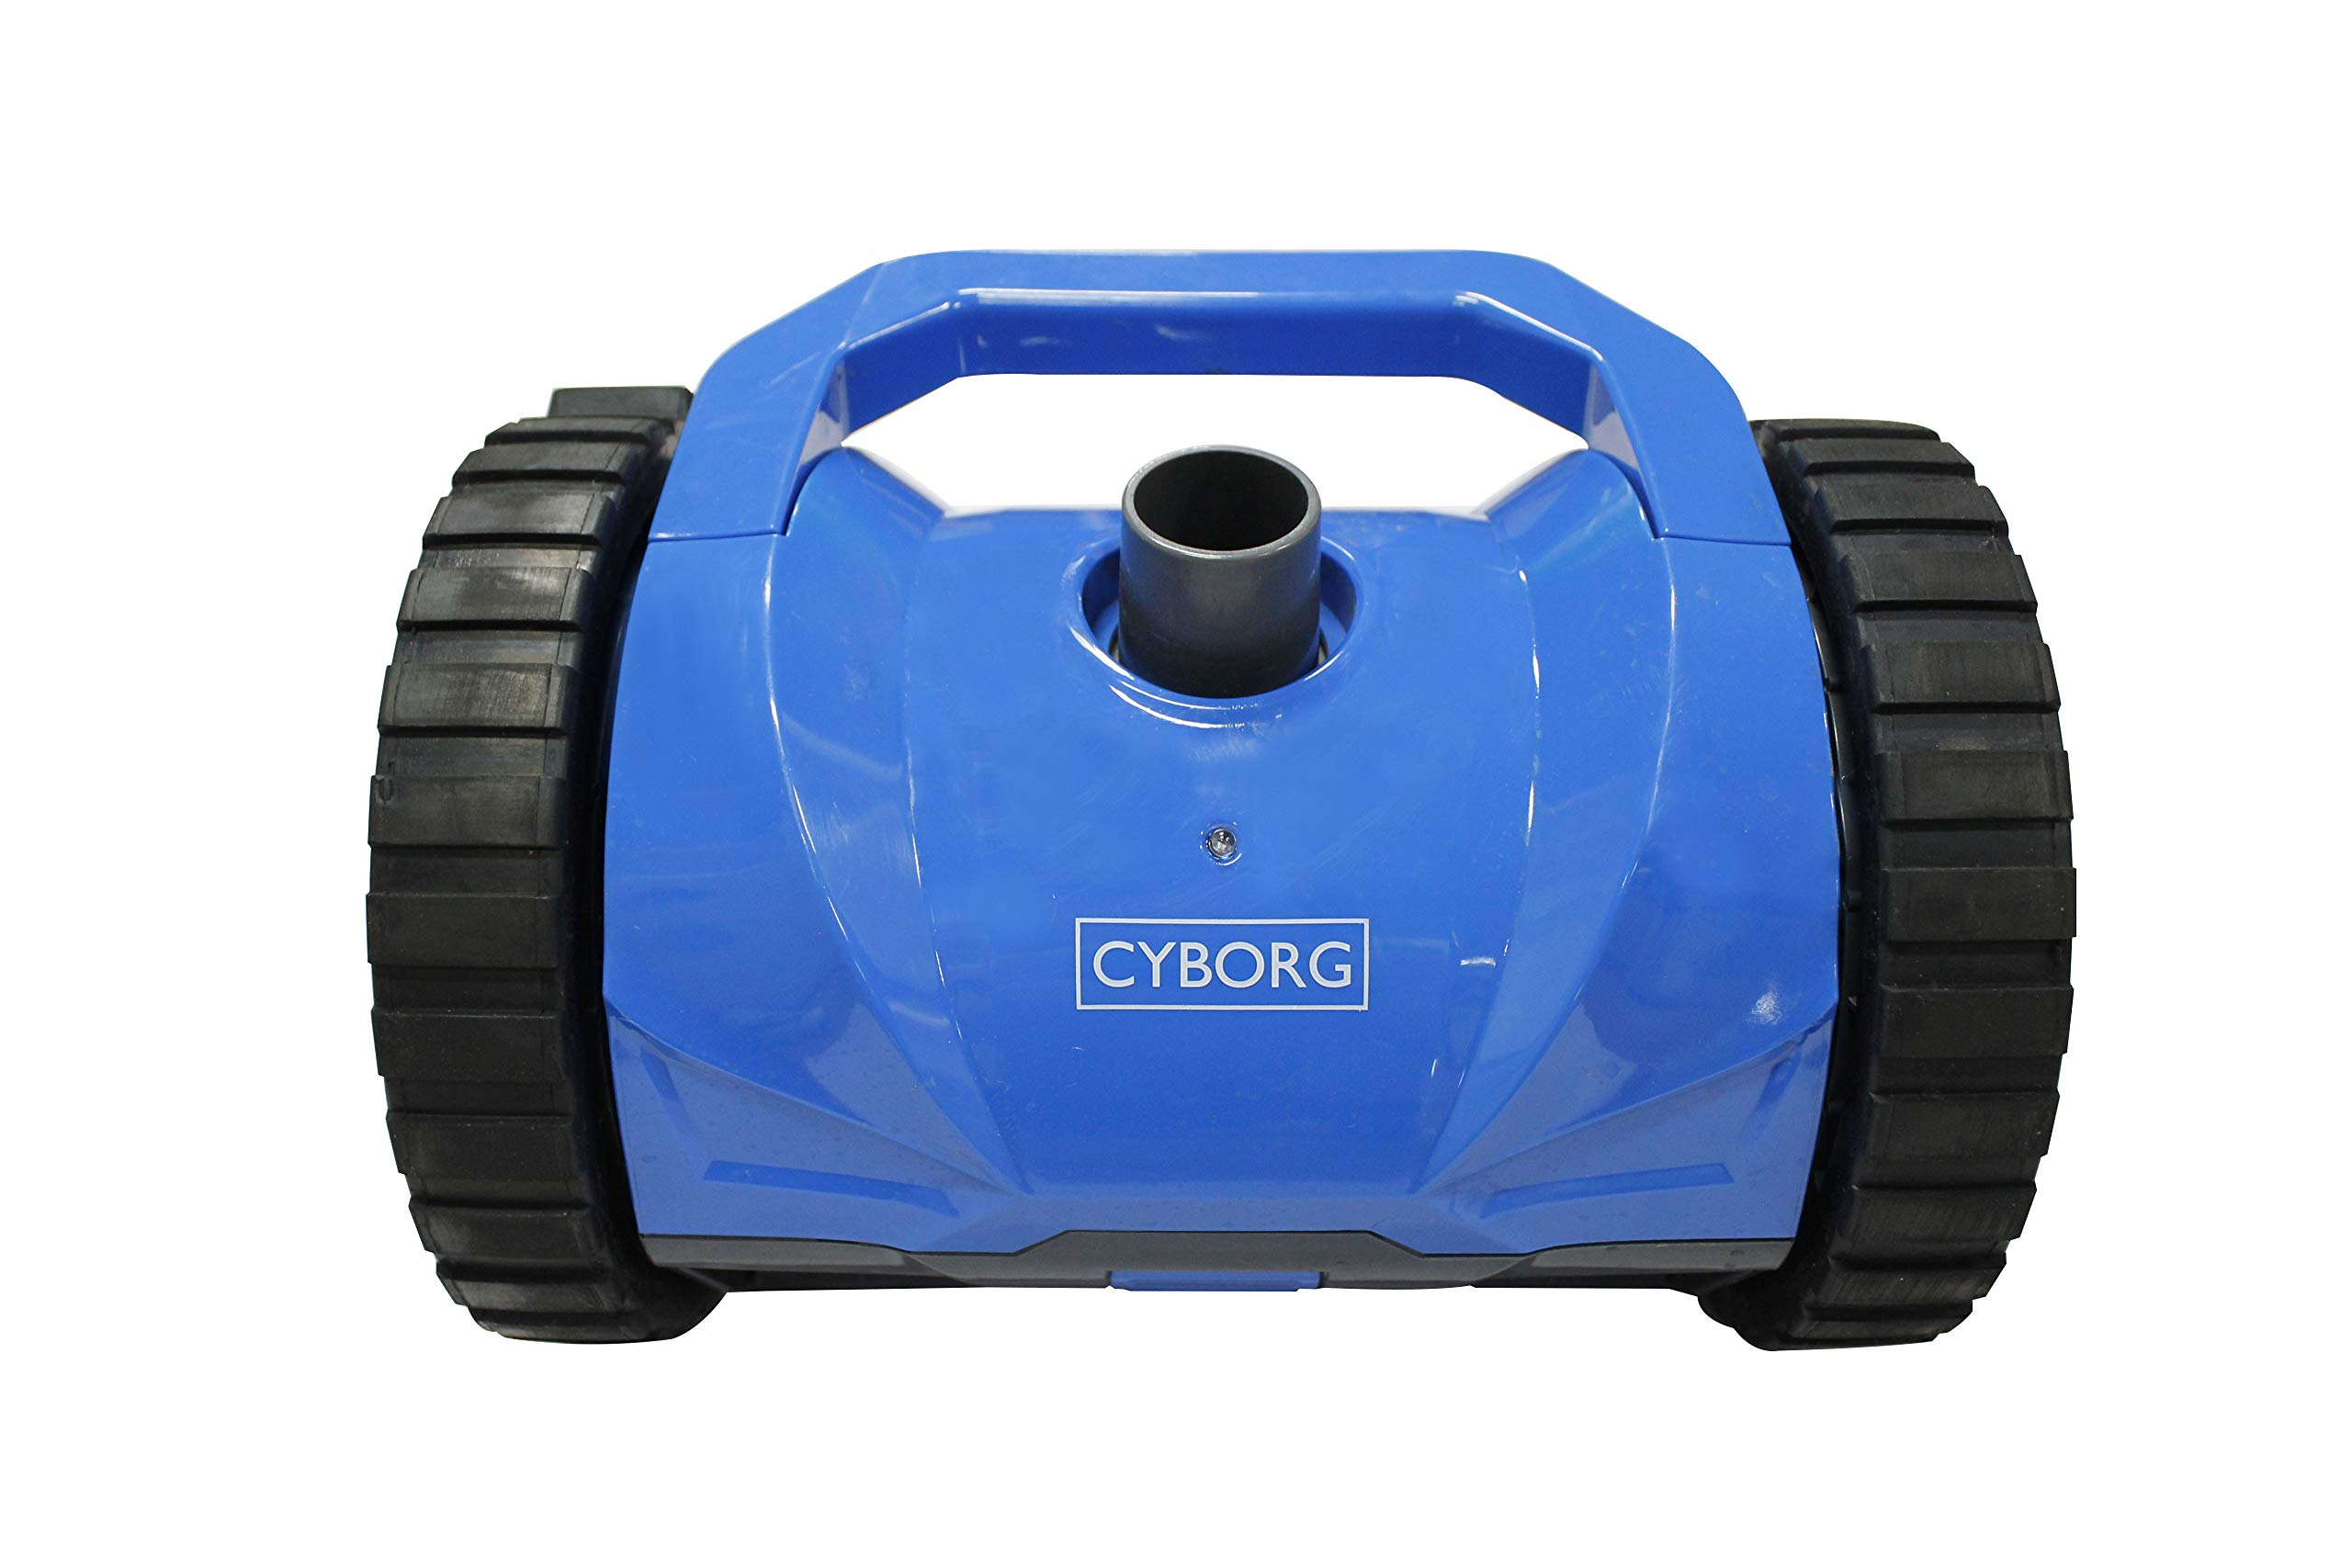 Cyborg Inground Automatic Pool Cleaner by Pool World